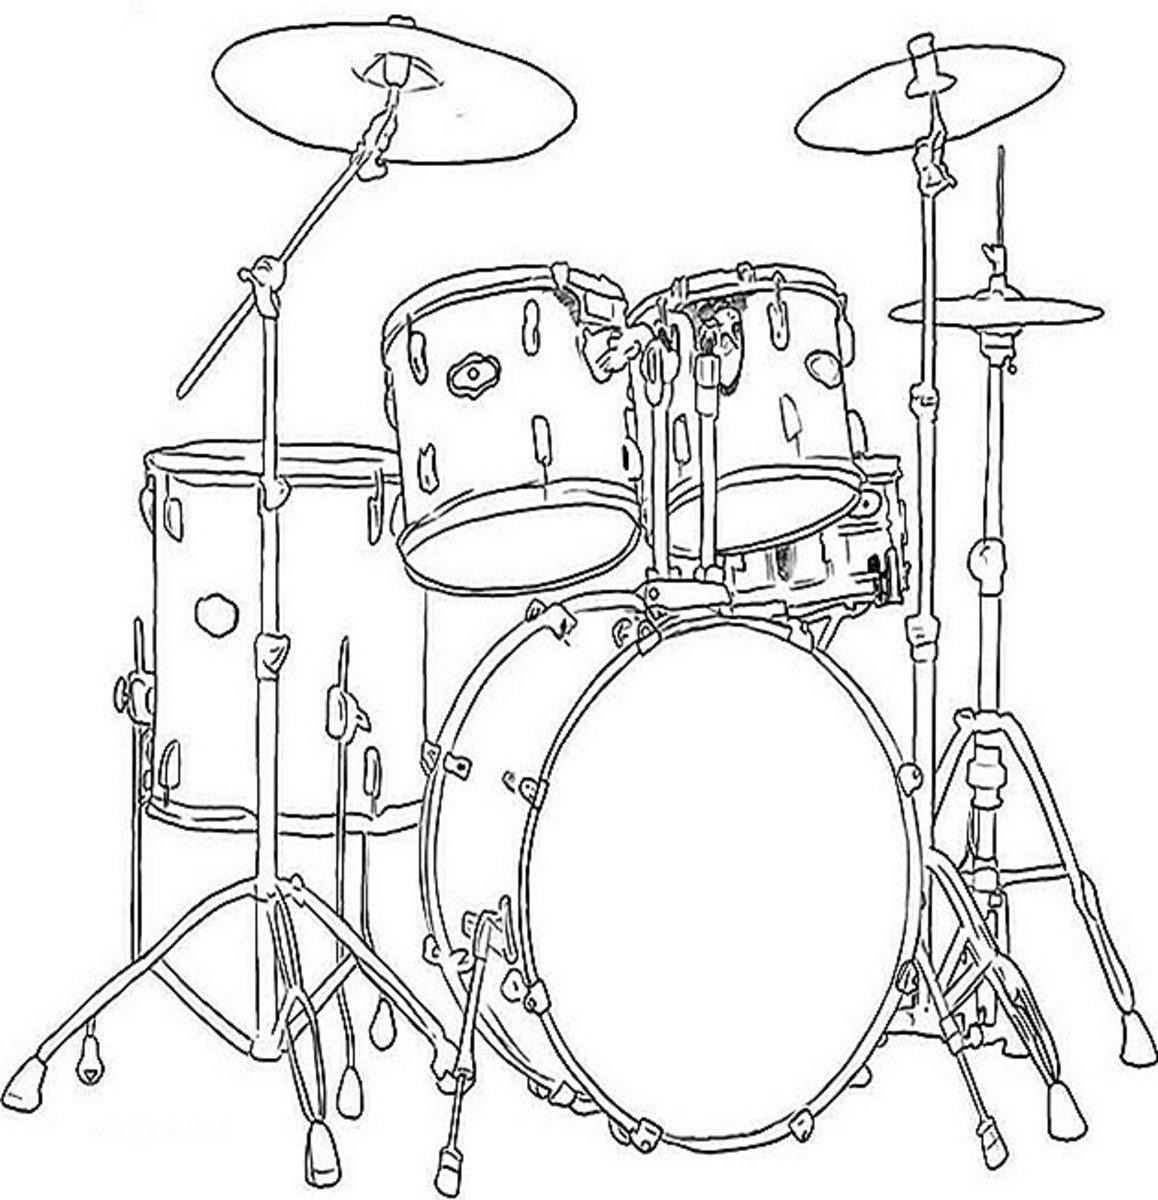 drum set coloring page - musical instruments kids coloring pages free colouring